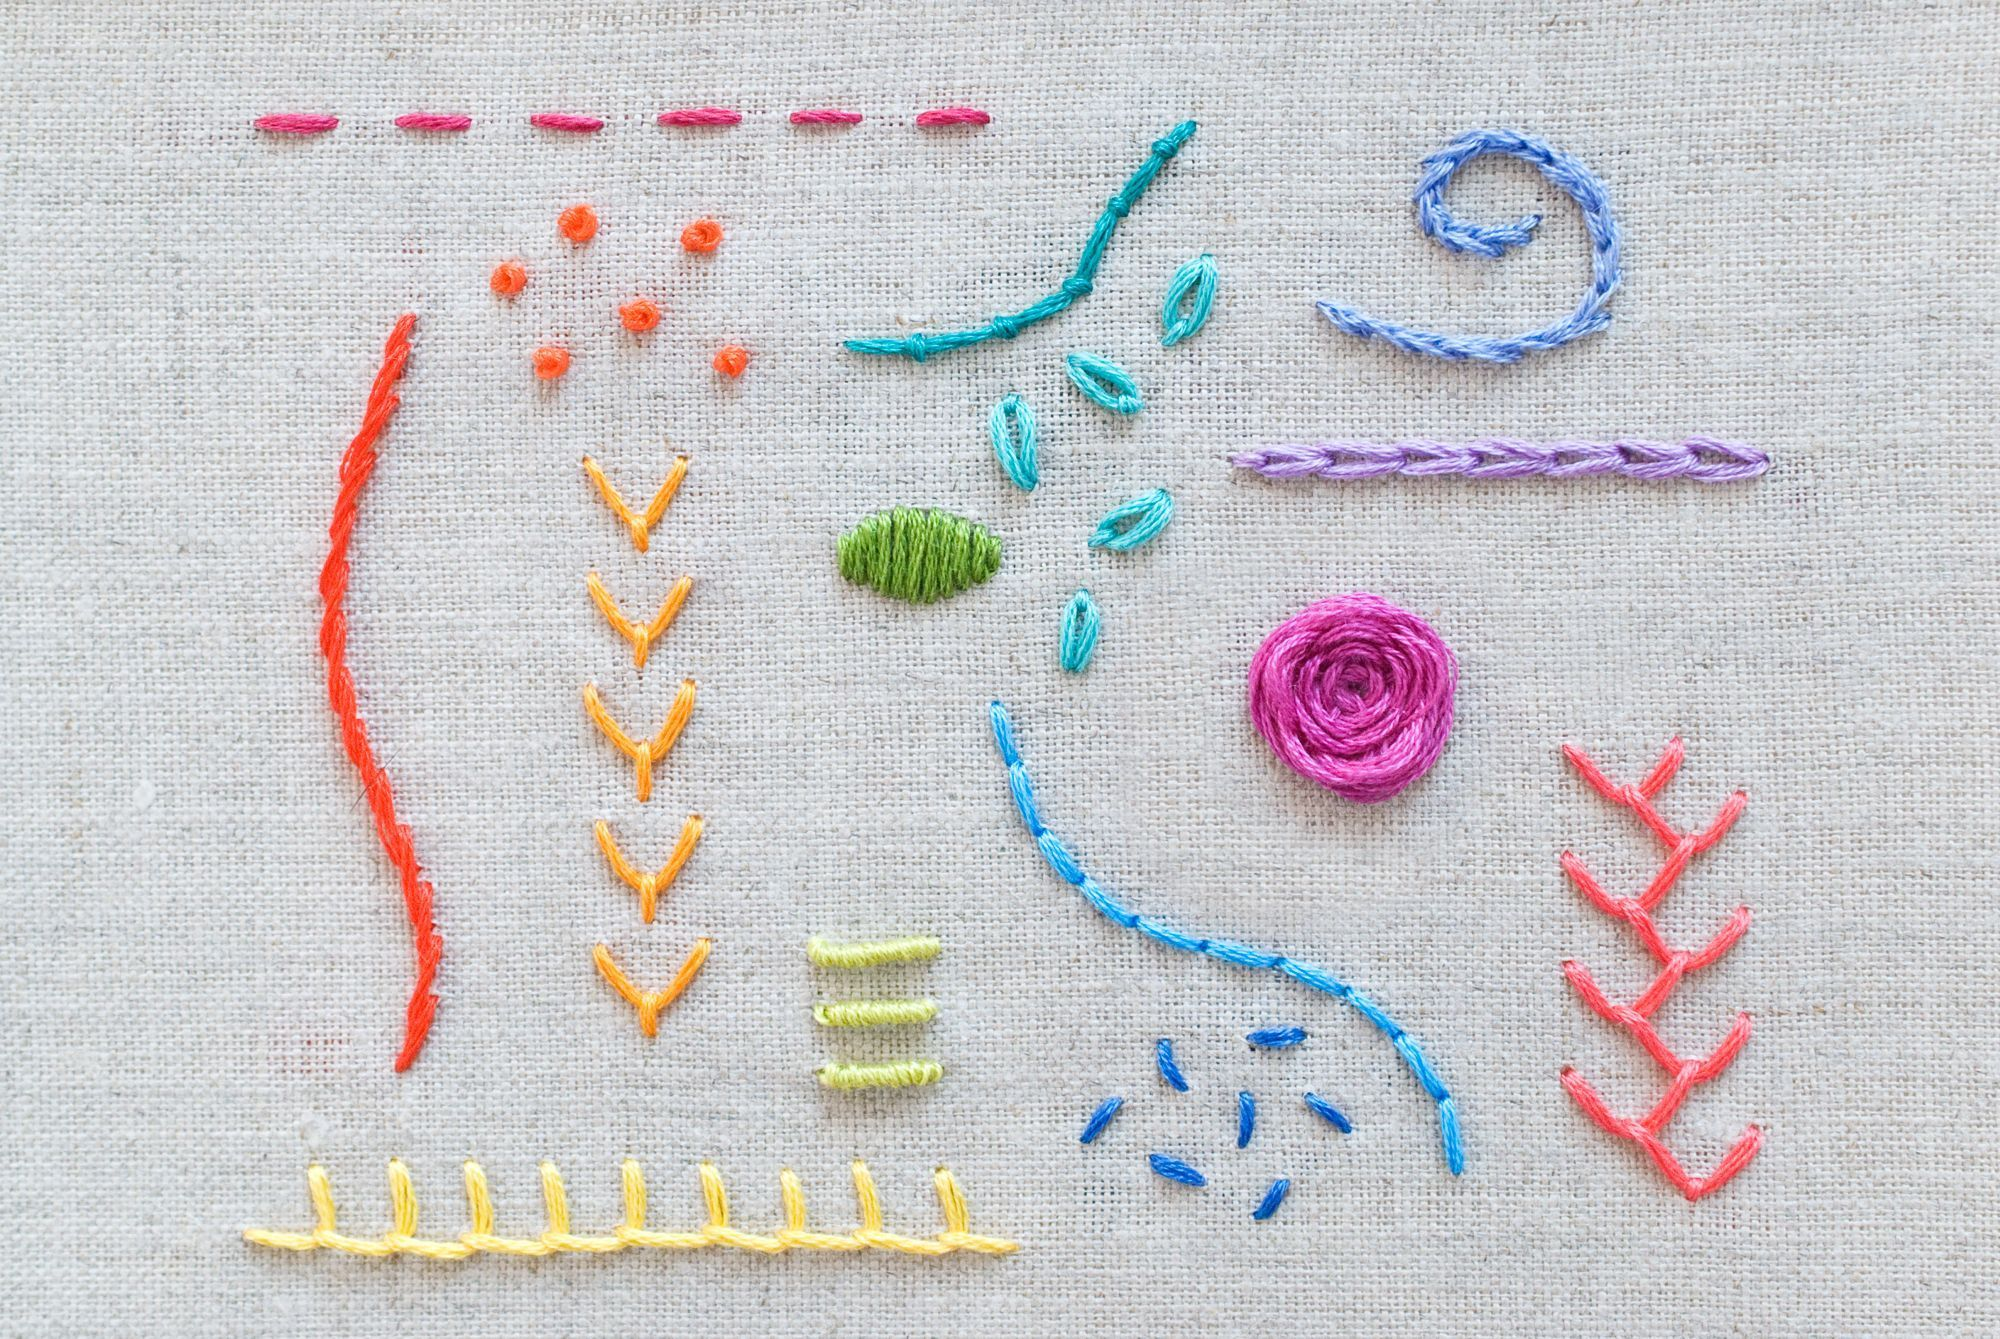 15 Basic Hand Embroidery Stitches You Should Know | Stitch This ...